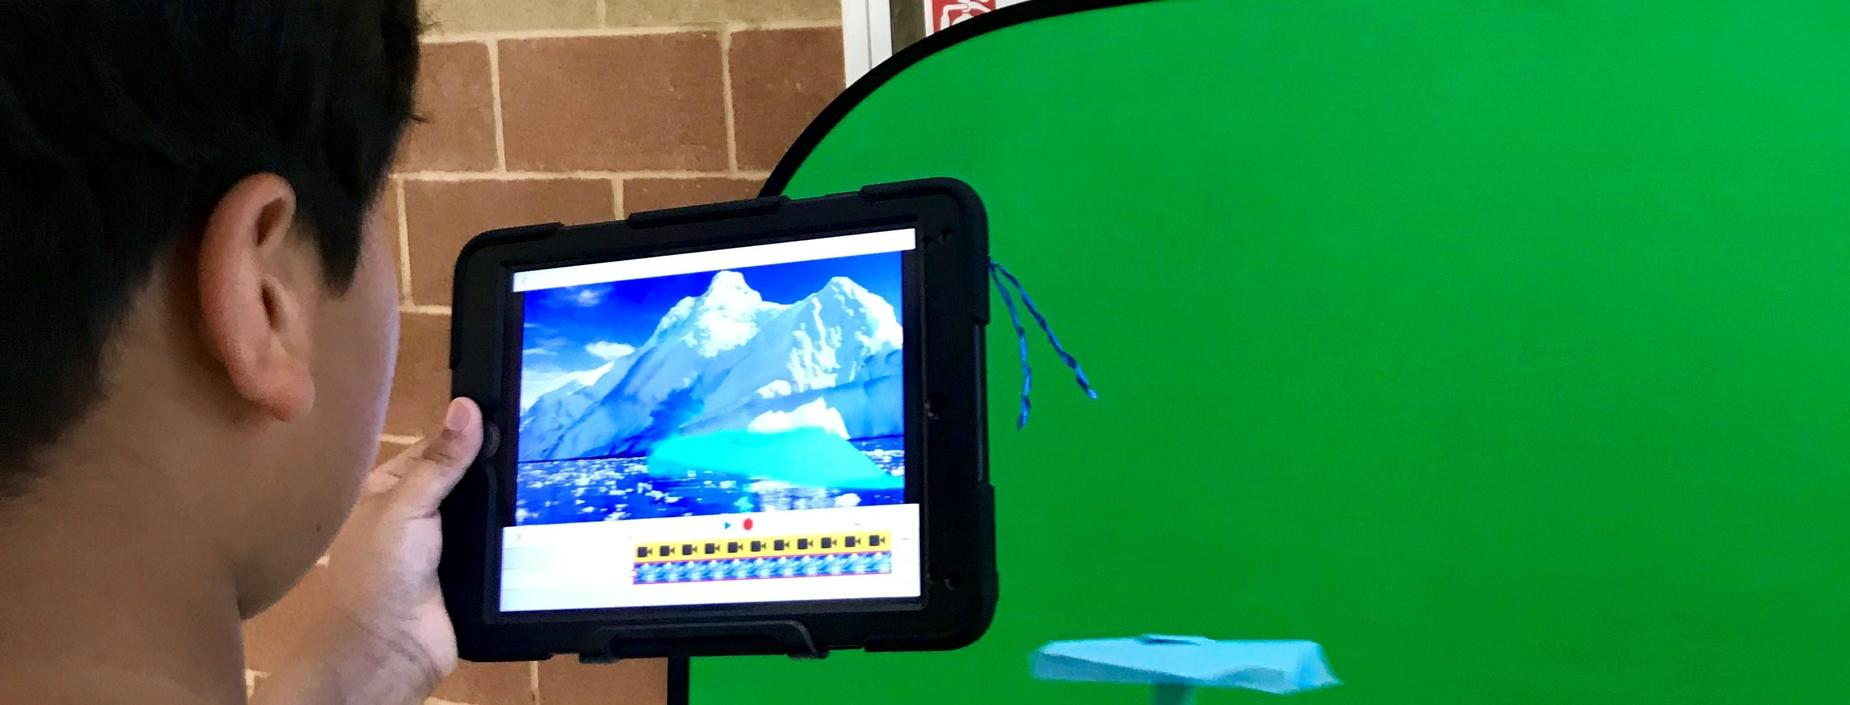 Student uses tablet and green screen.